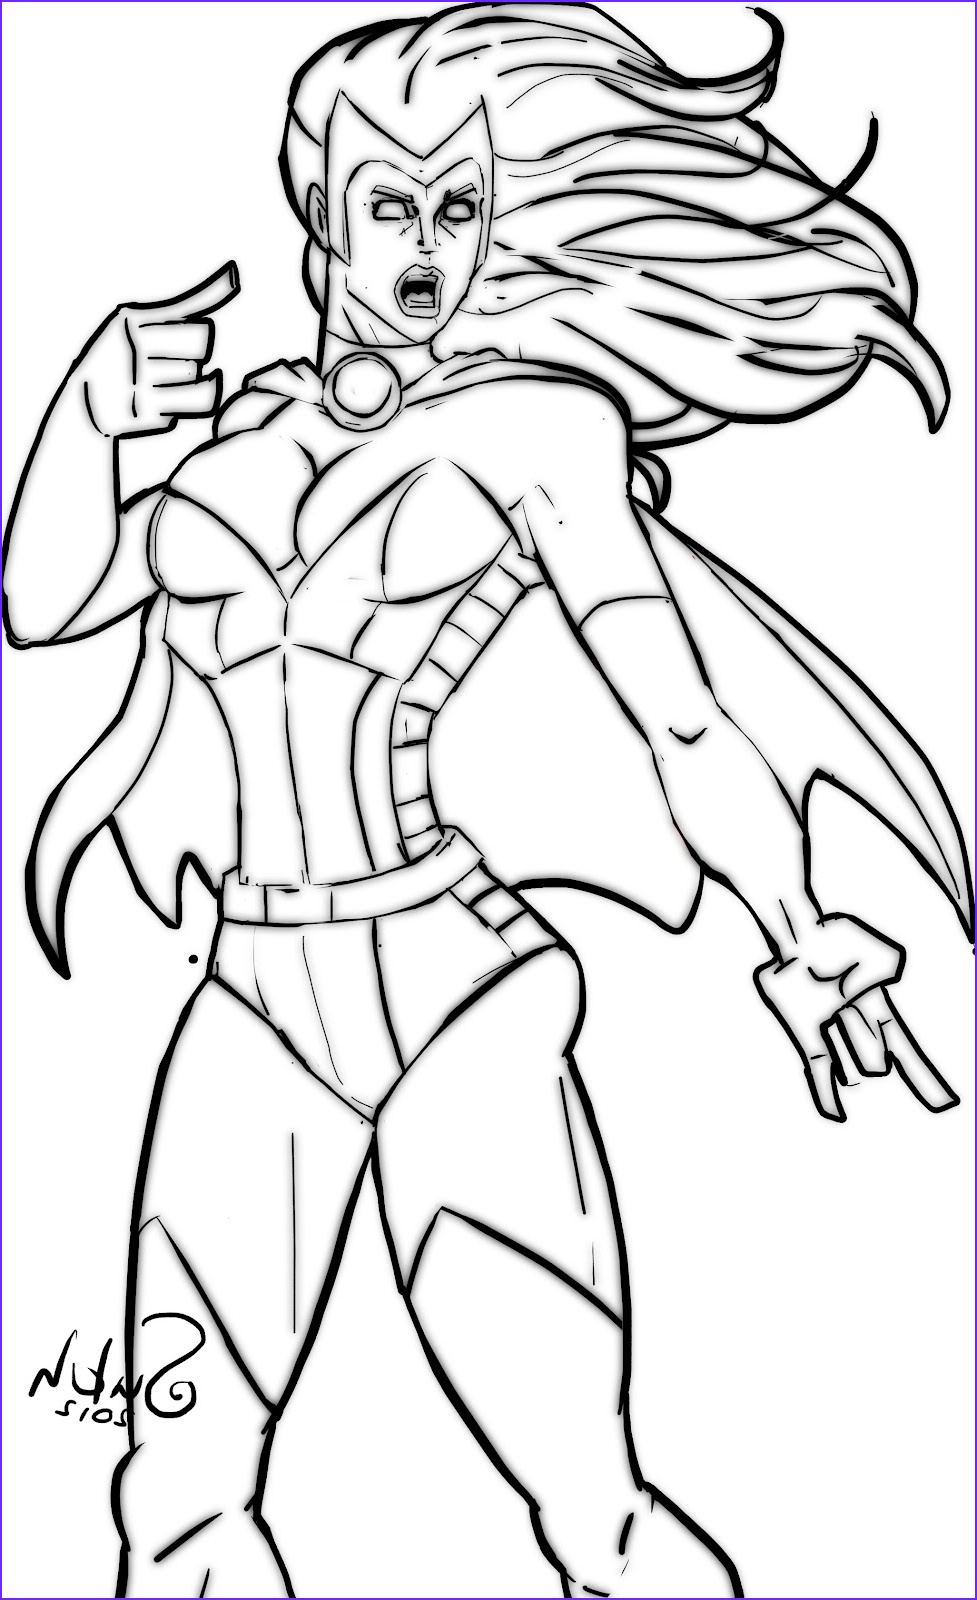 Marvel Coloring Pages Inspirational Photography Marvel Super Heroes 123 Superheroes – Printable